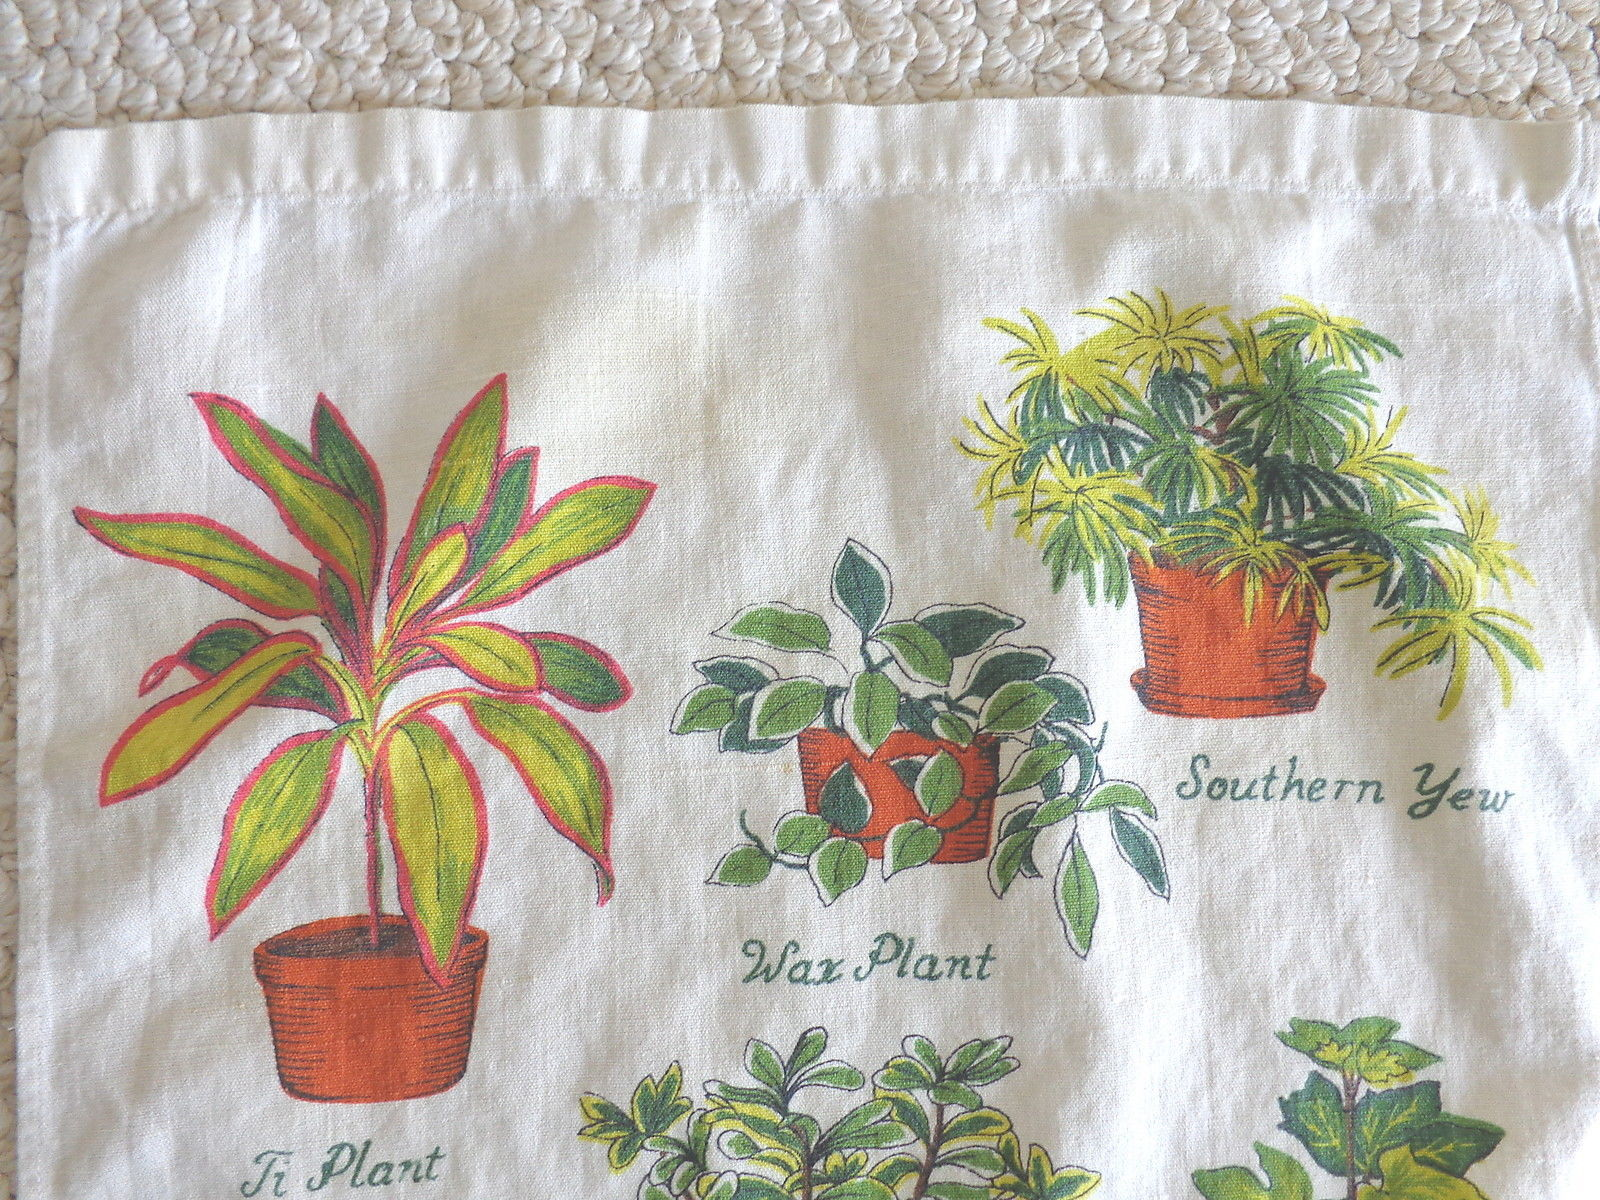 Vintage Kitchen Towel Decorated with Potted Plants (#1117).